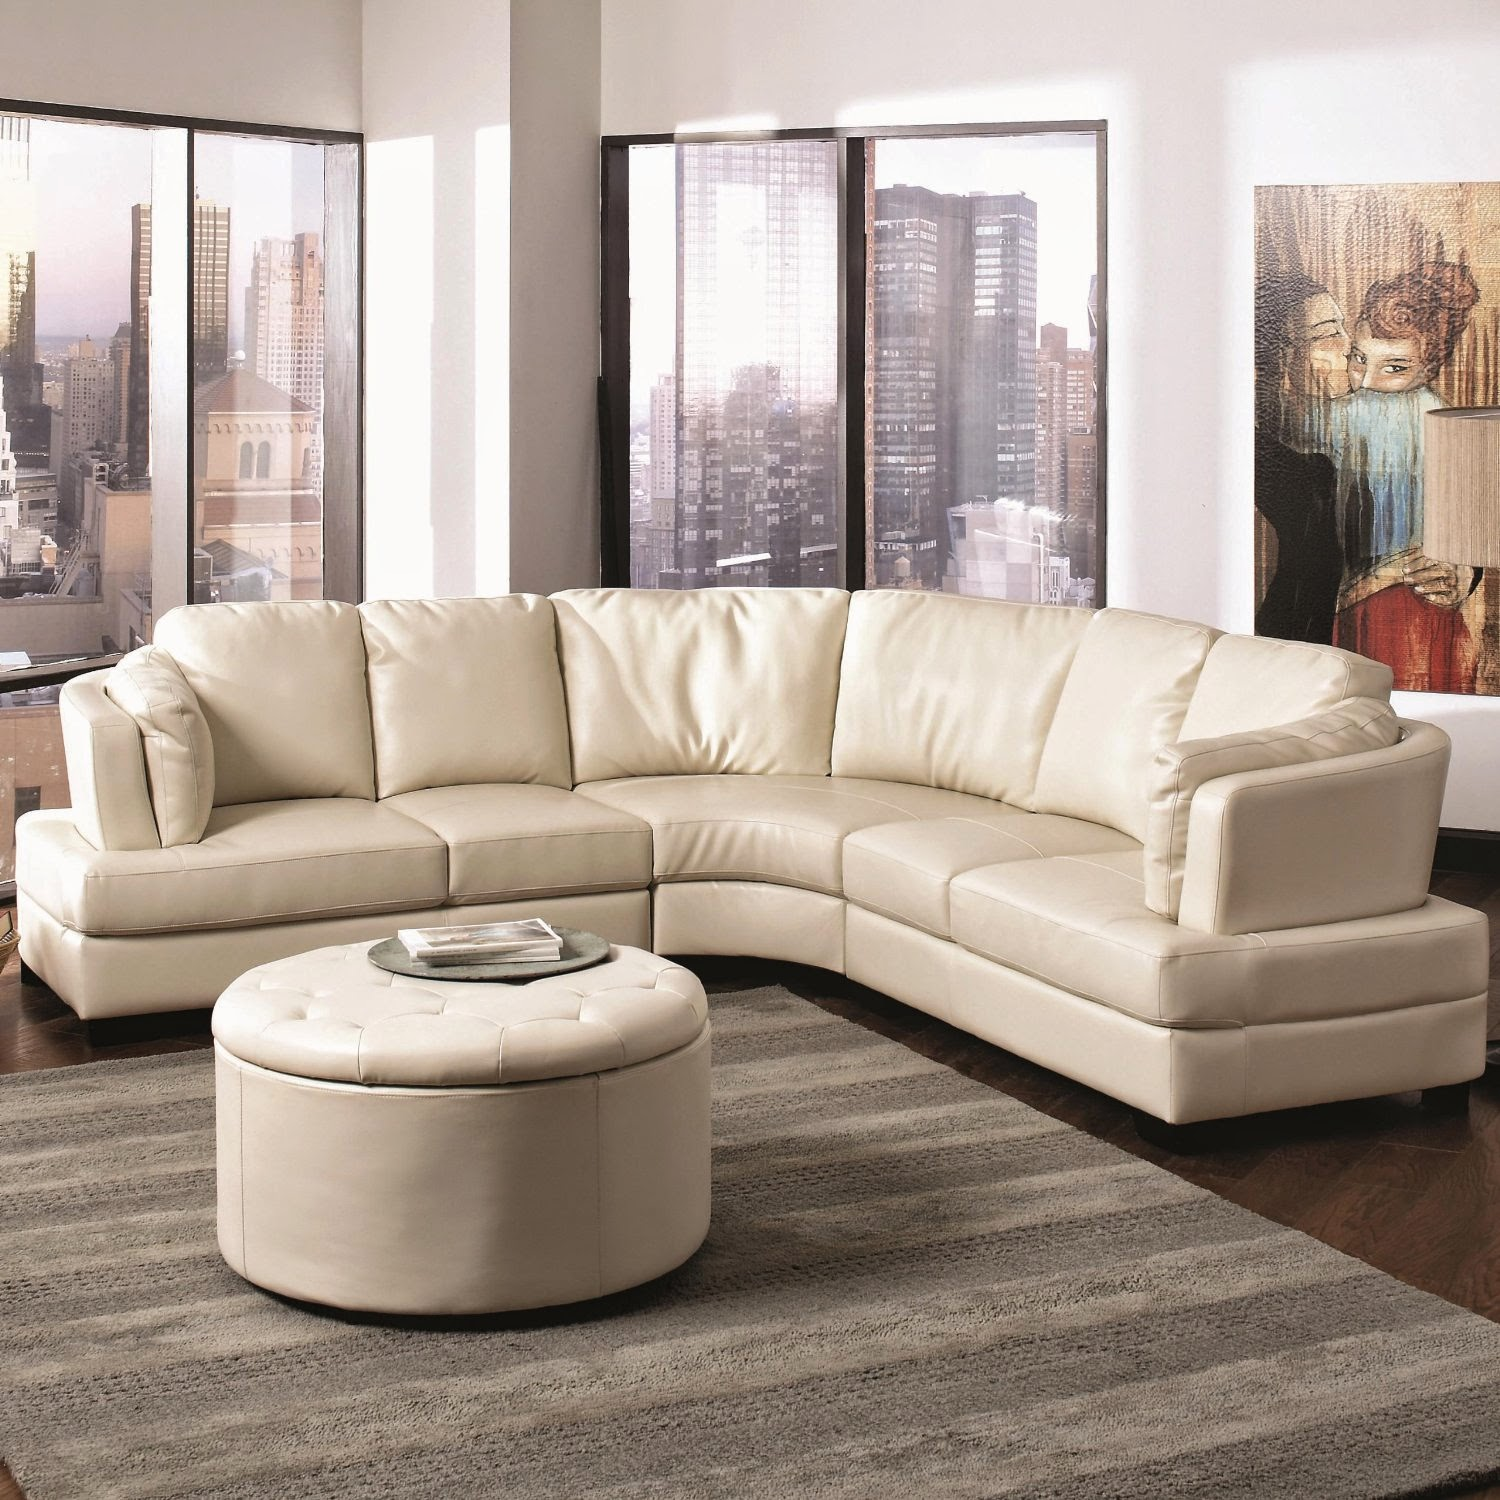 curved sofa curved leather sofa - landen contemporary curved leather sectional